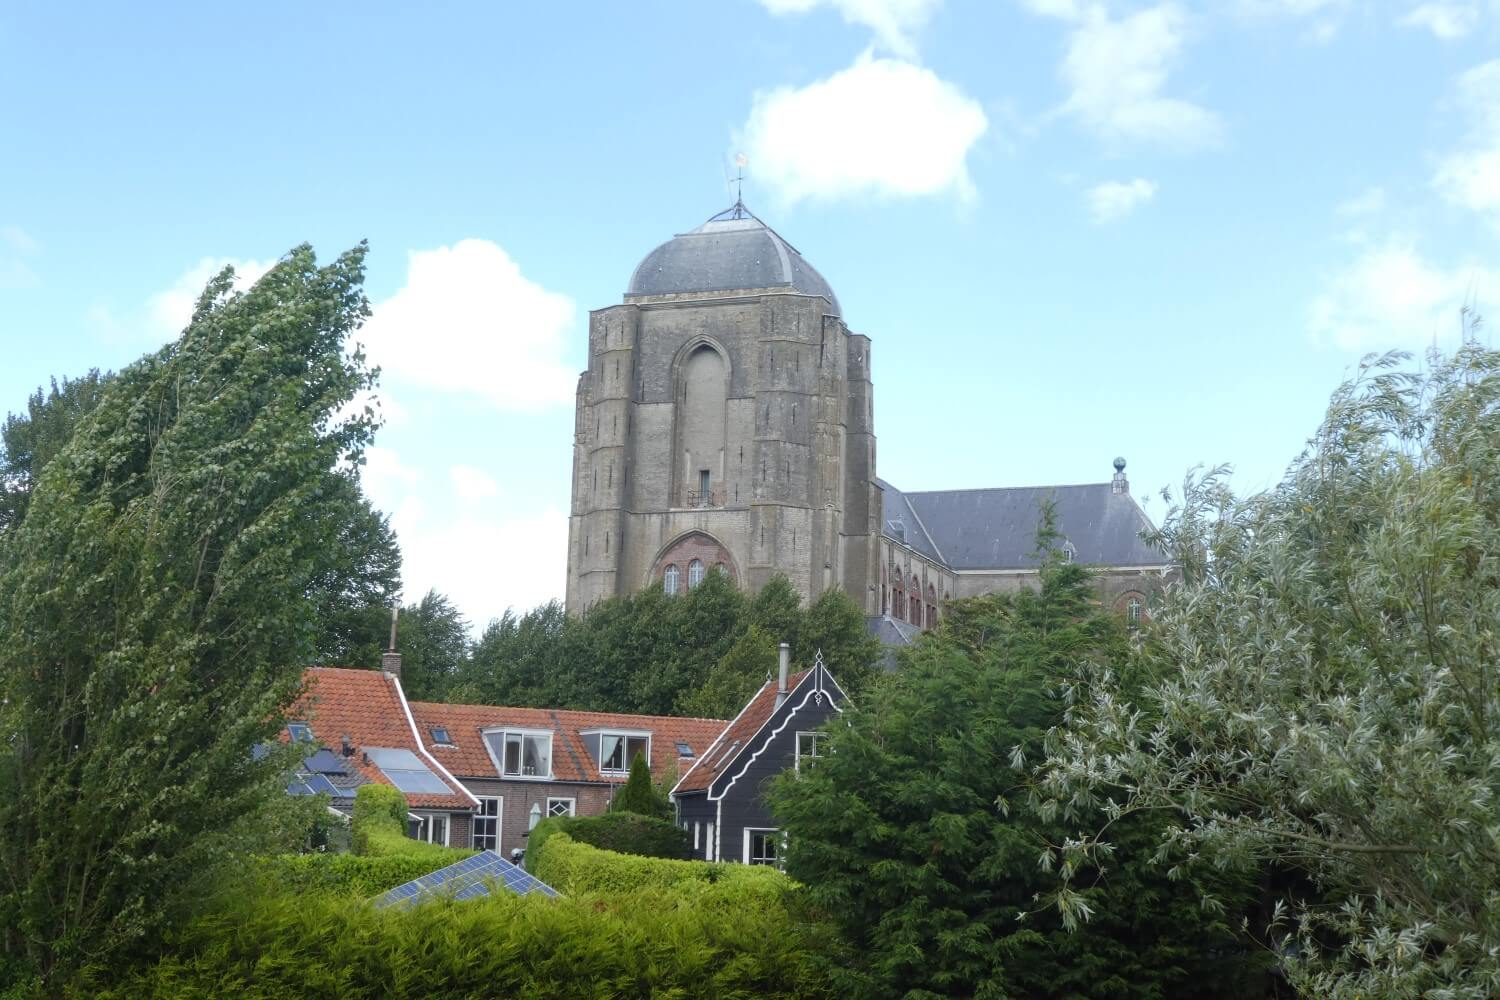 The Great Church or the Church of Our Lady in Veere